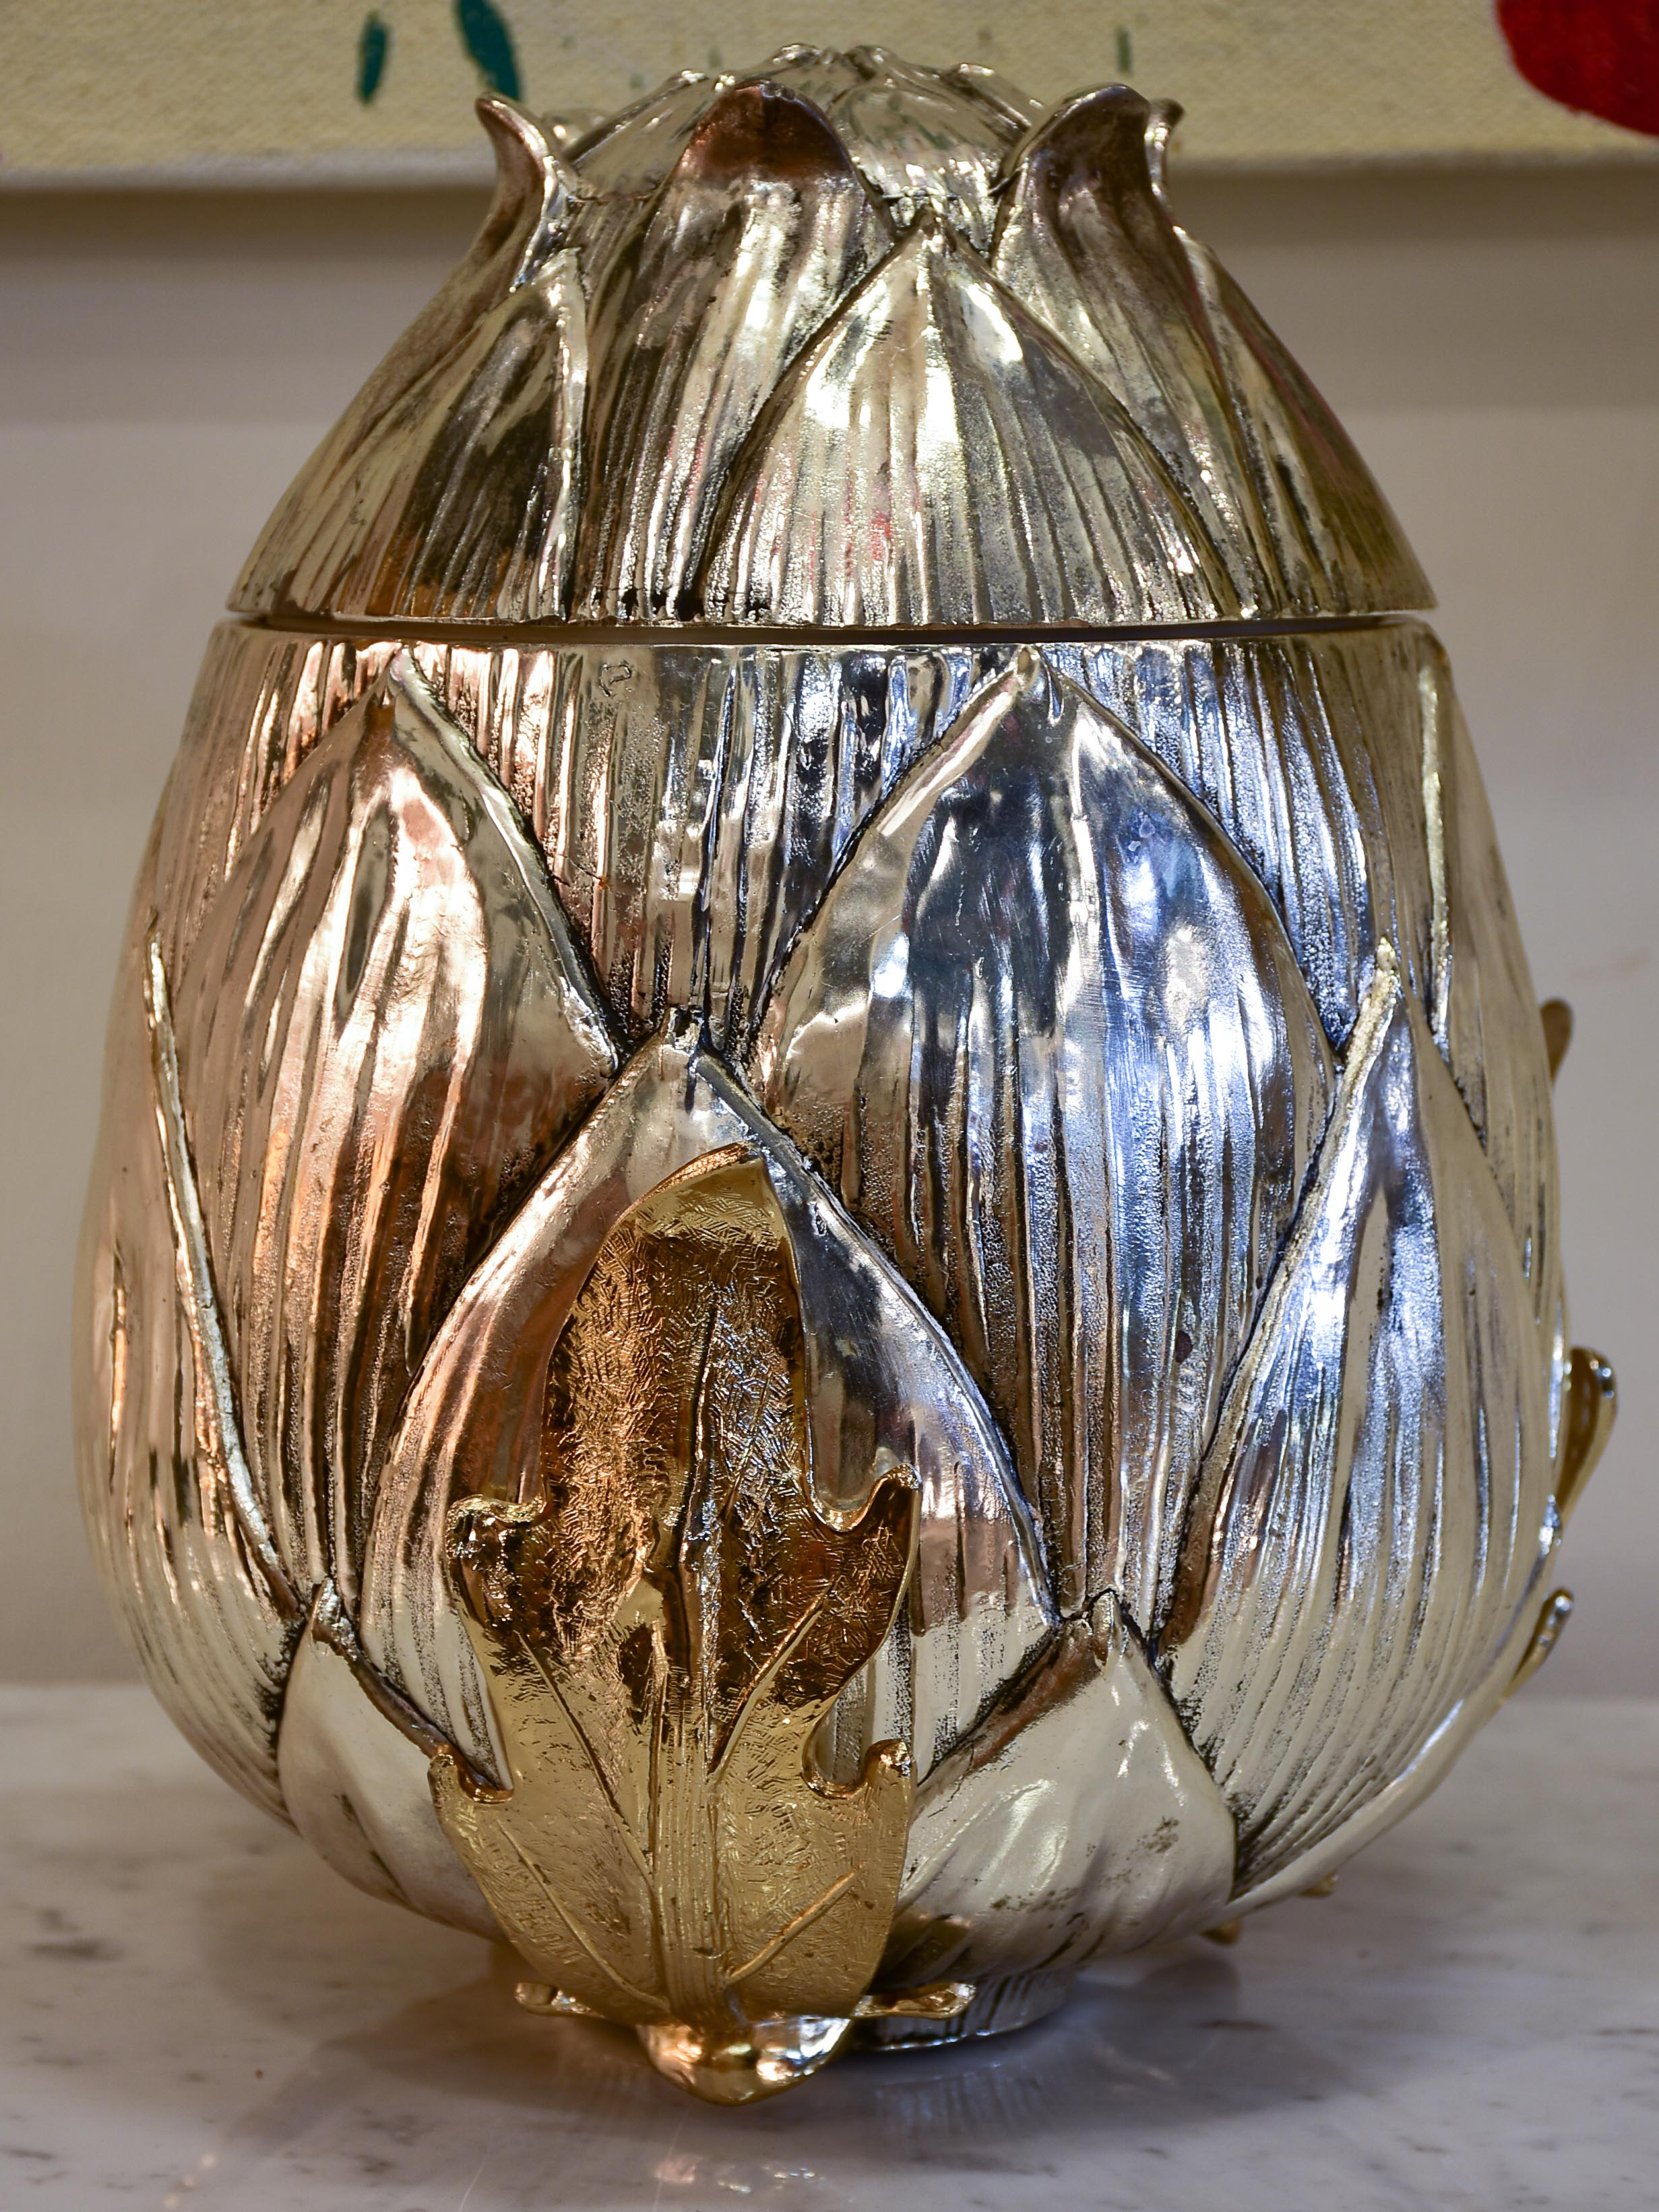 Very large Mauro Manetti champagne bucket - artichoke